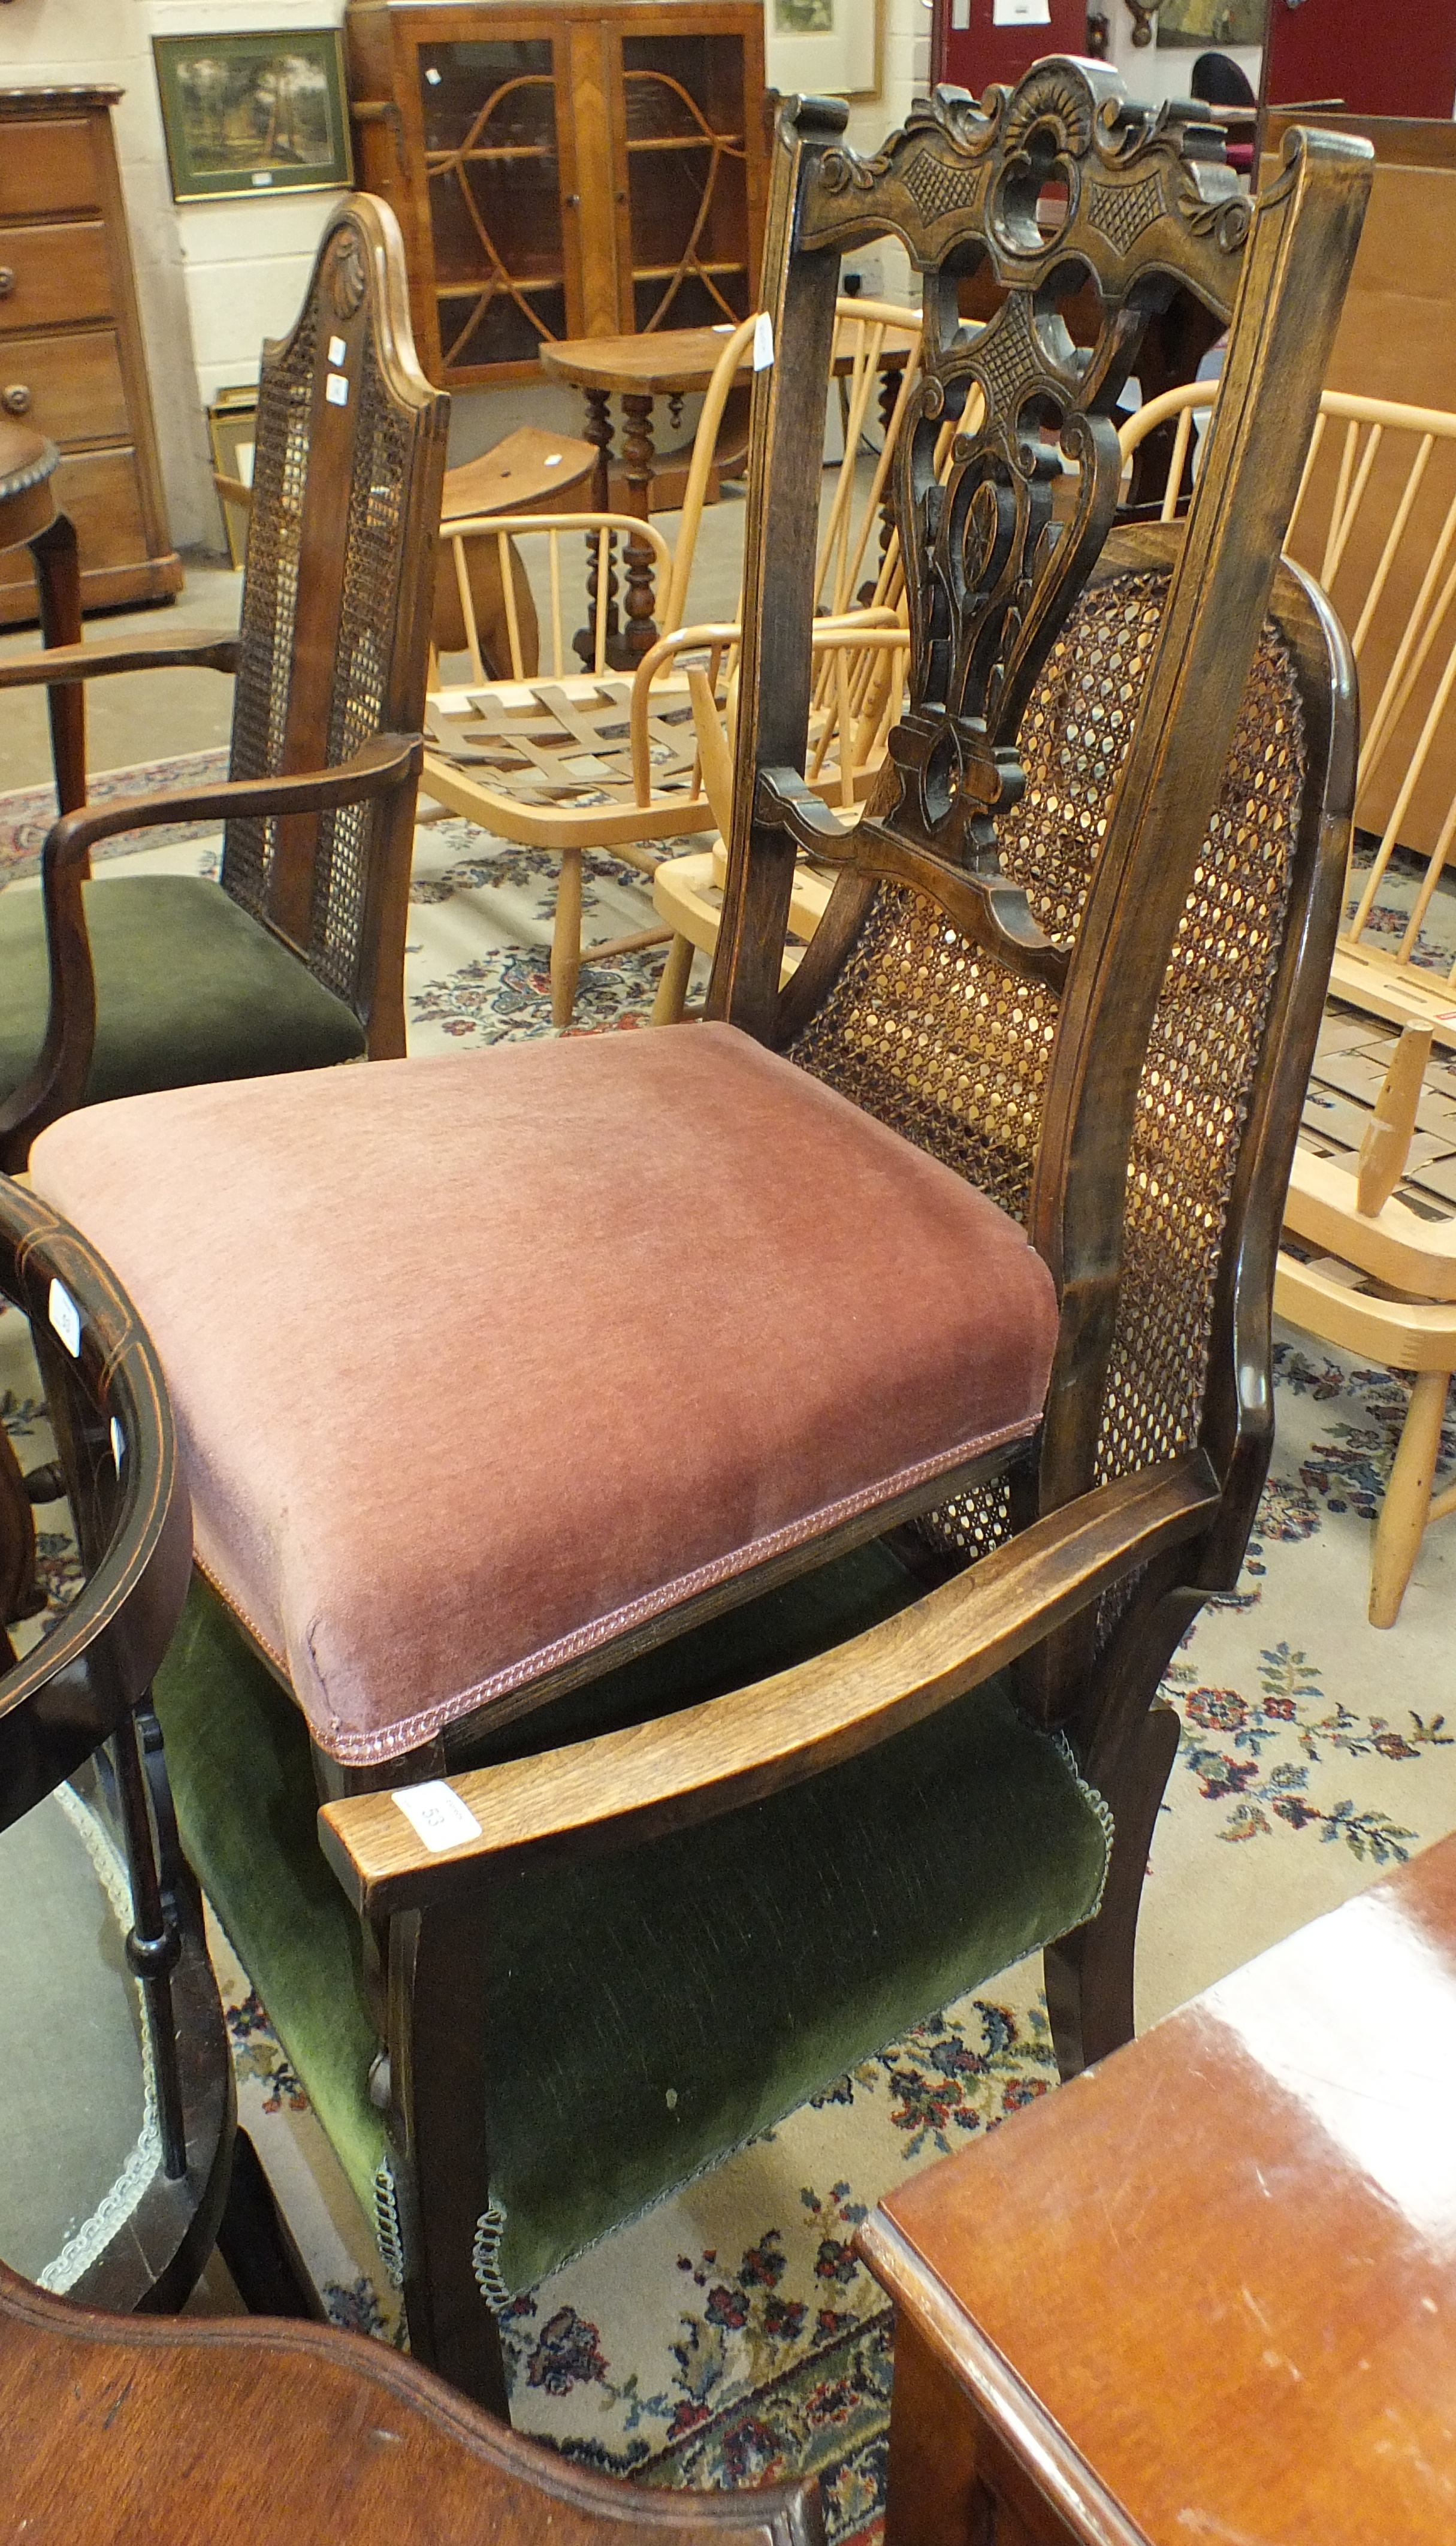 Lot 53 - An Edwardian stained wood armchair with padded seat, an Edwardian corner chair, a caned-back